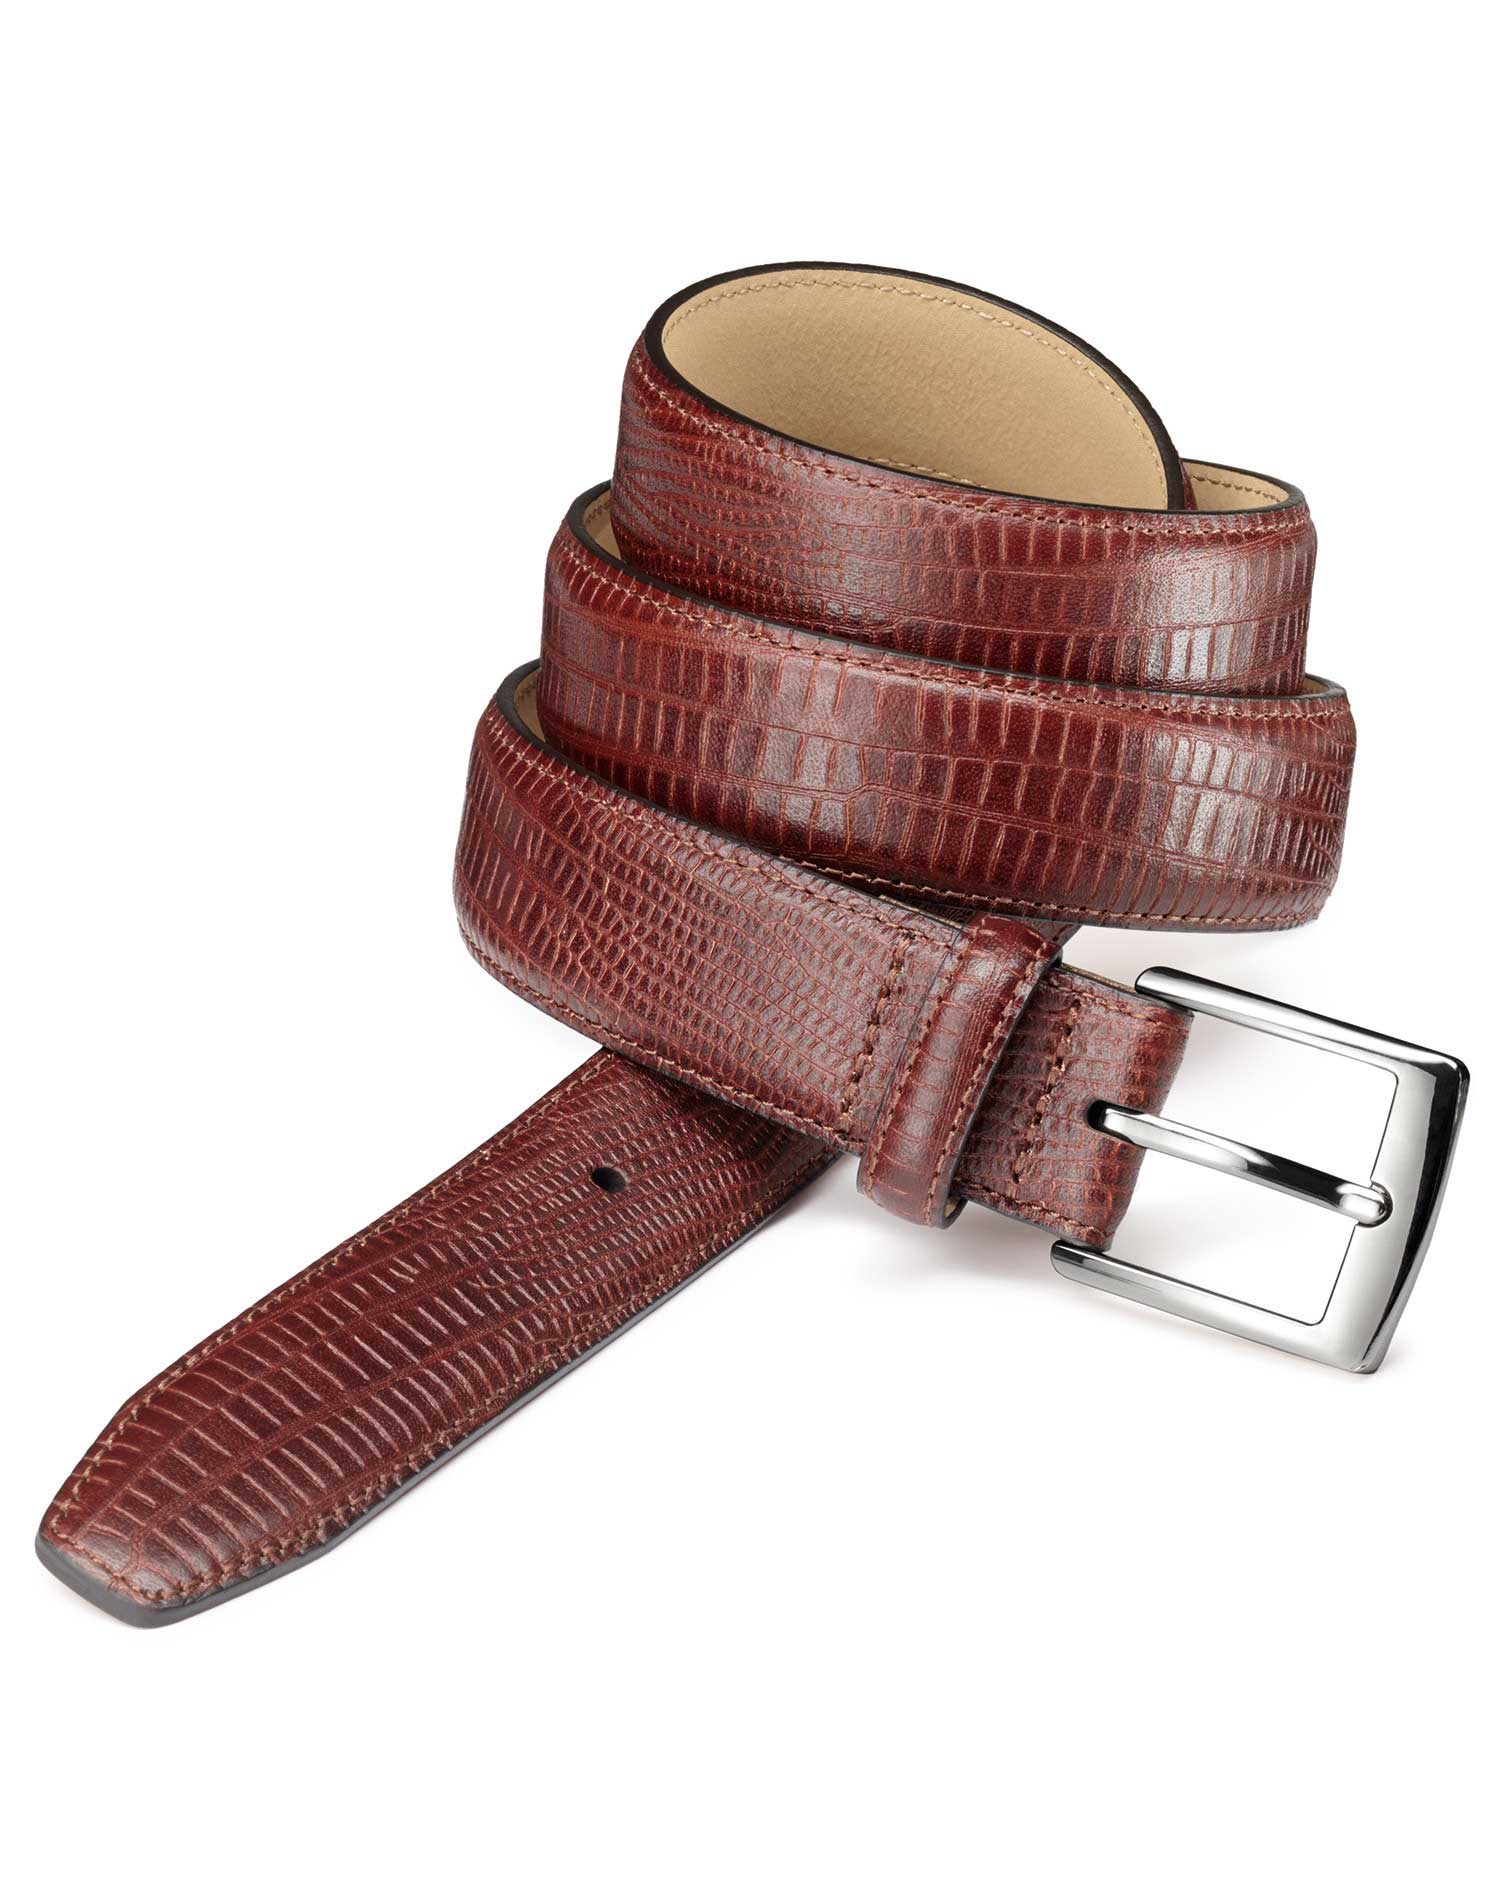 Tan Leather Croc Embossed Belt Size 42-44 by Charles Tyrwhitt